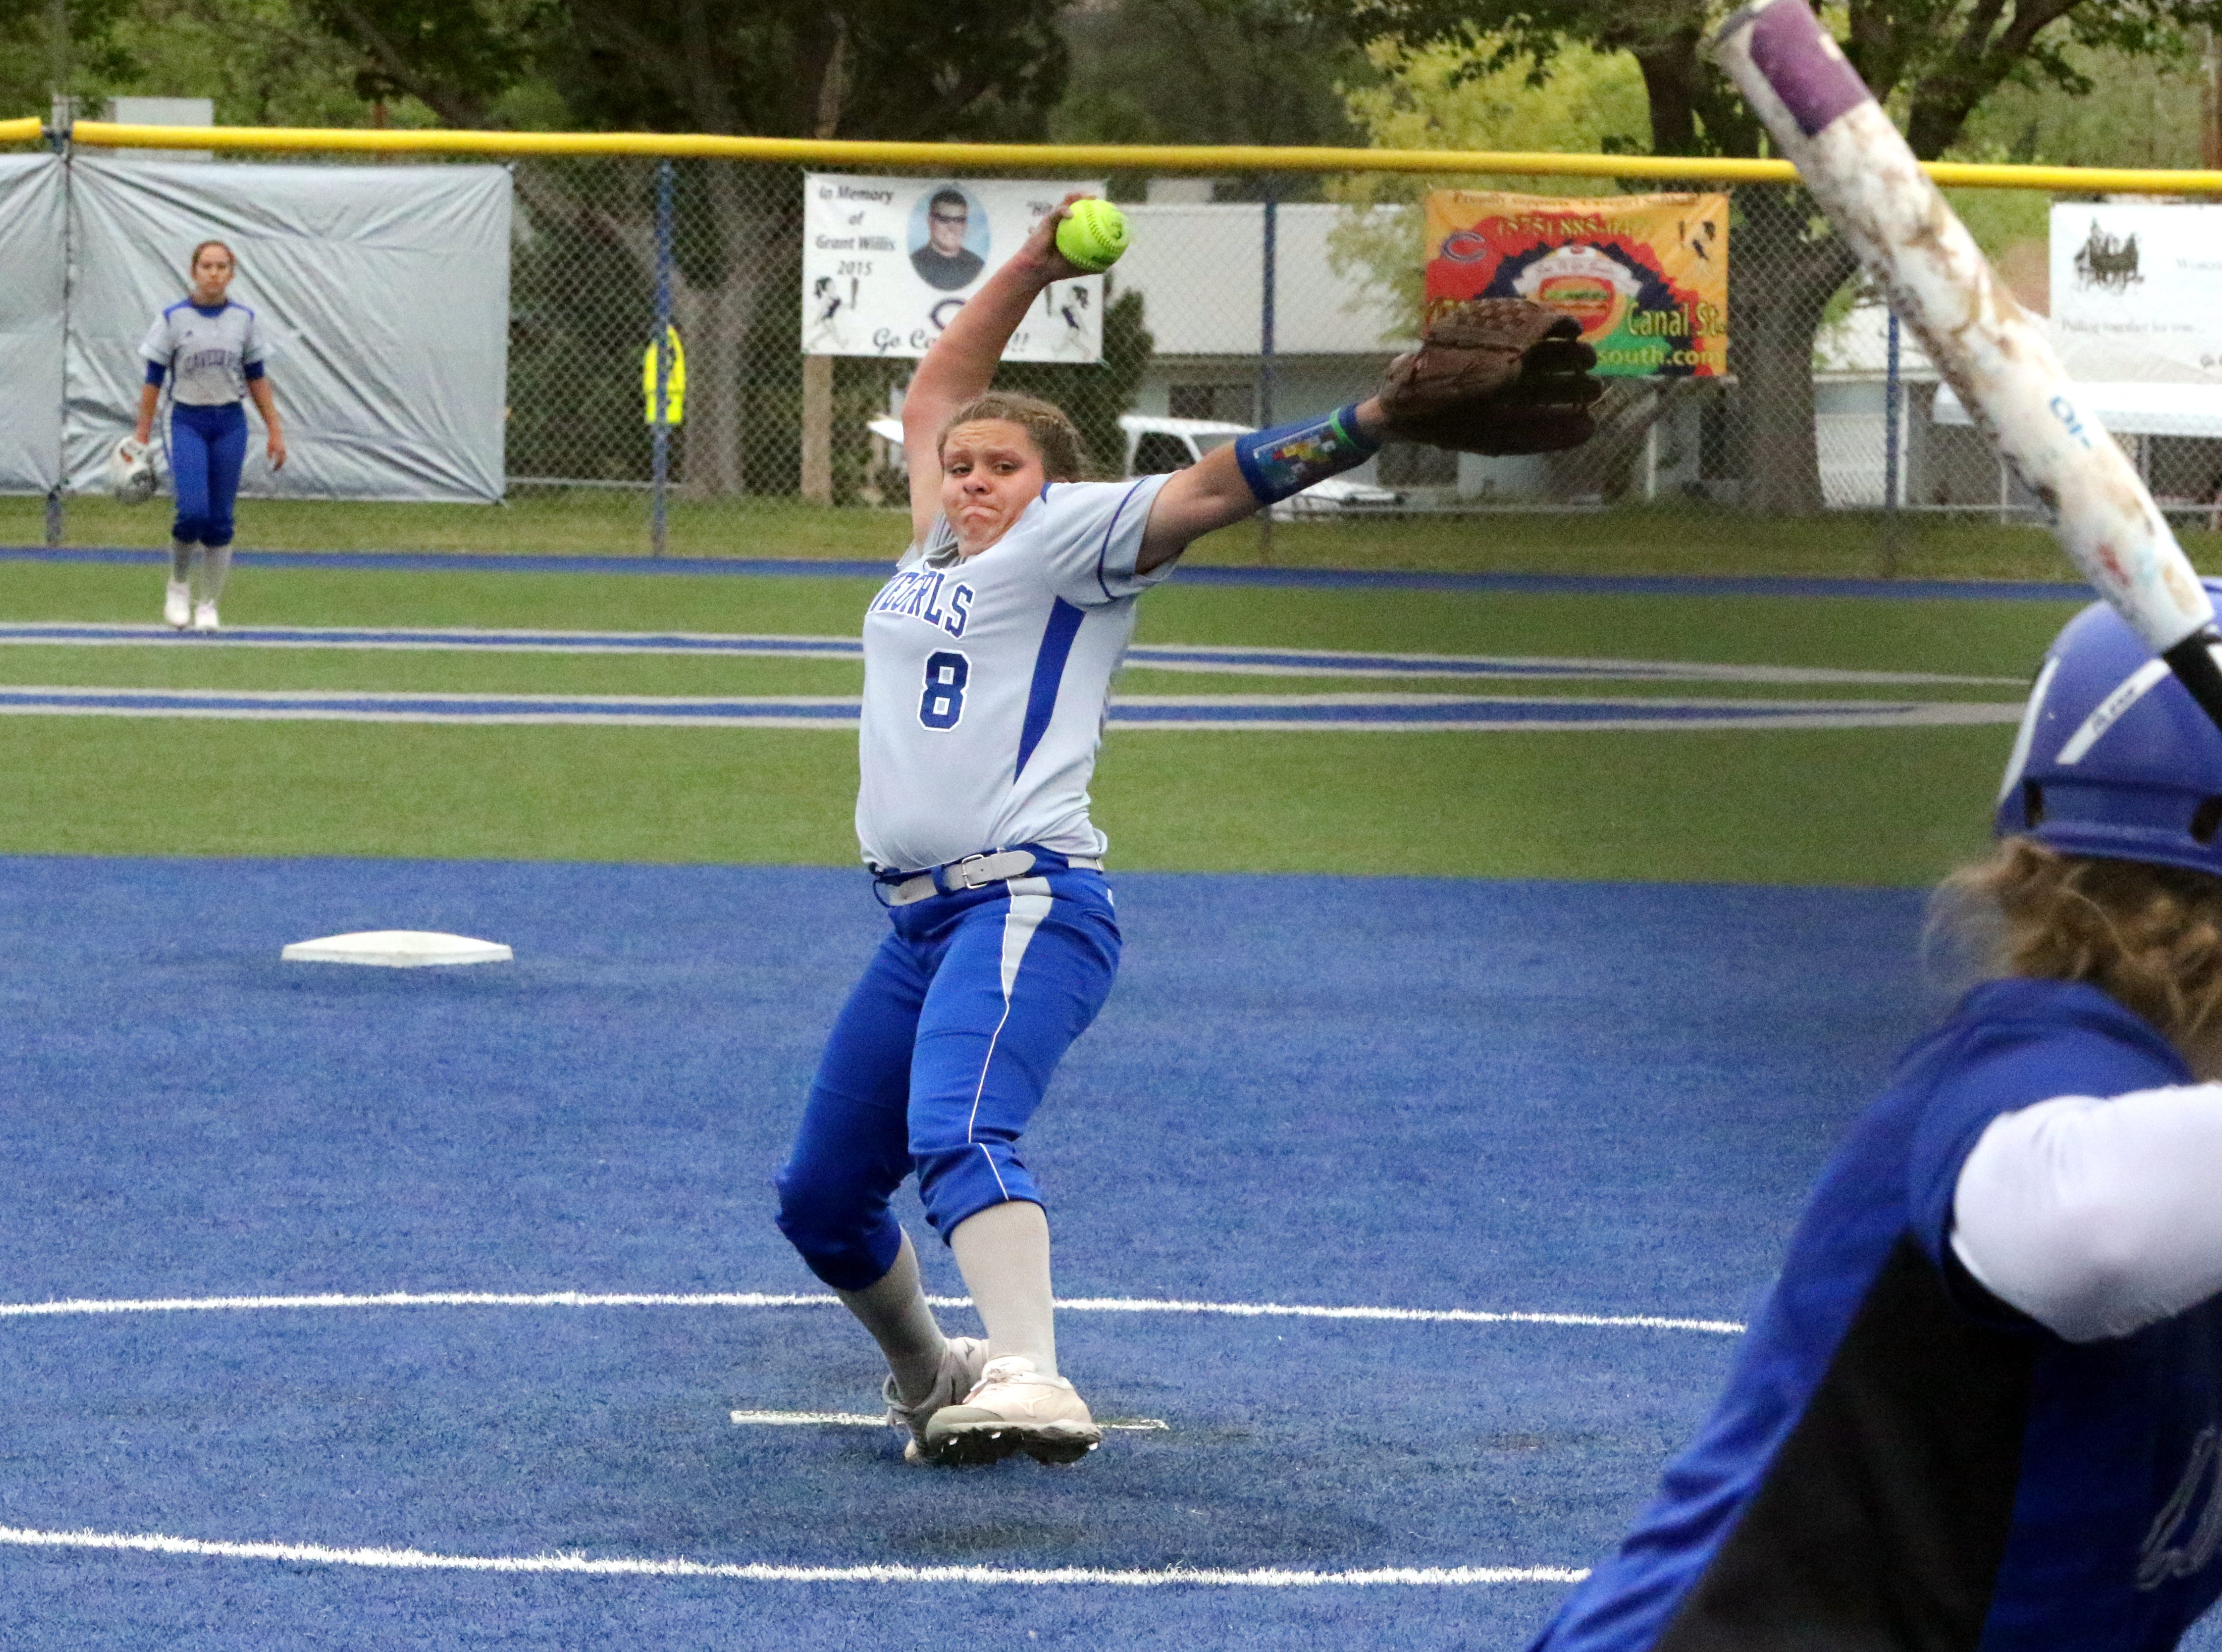 Brianna Santo pitches in Game 1 of Friday's doubleheader vs. Lovington. She threw a complete game, allowing two runs in seven innings of work.